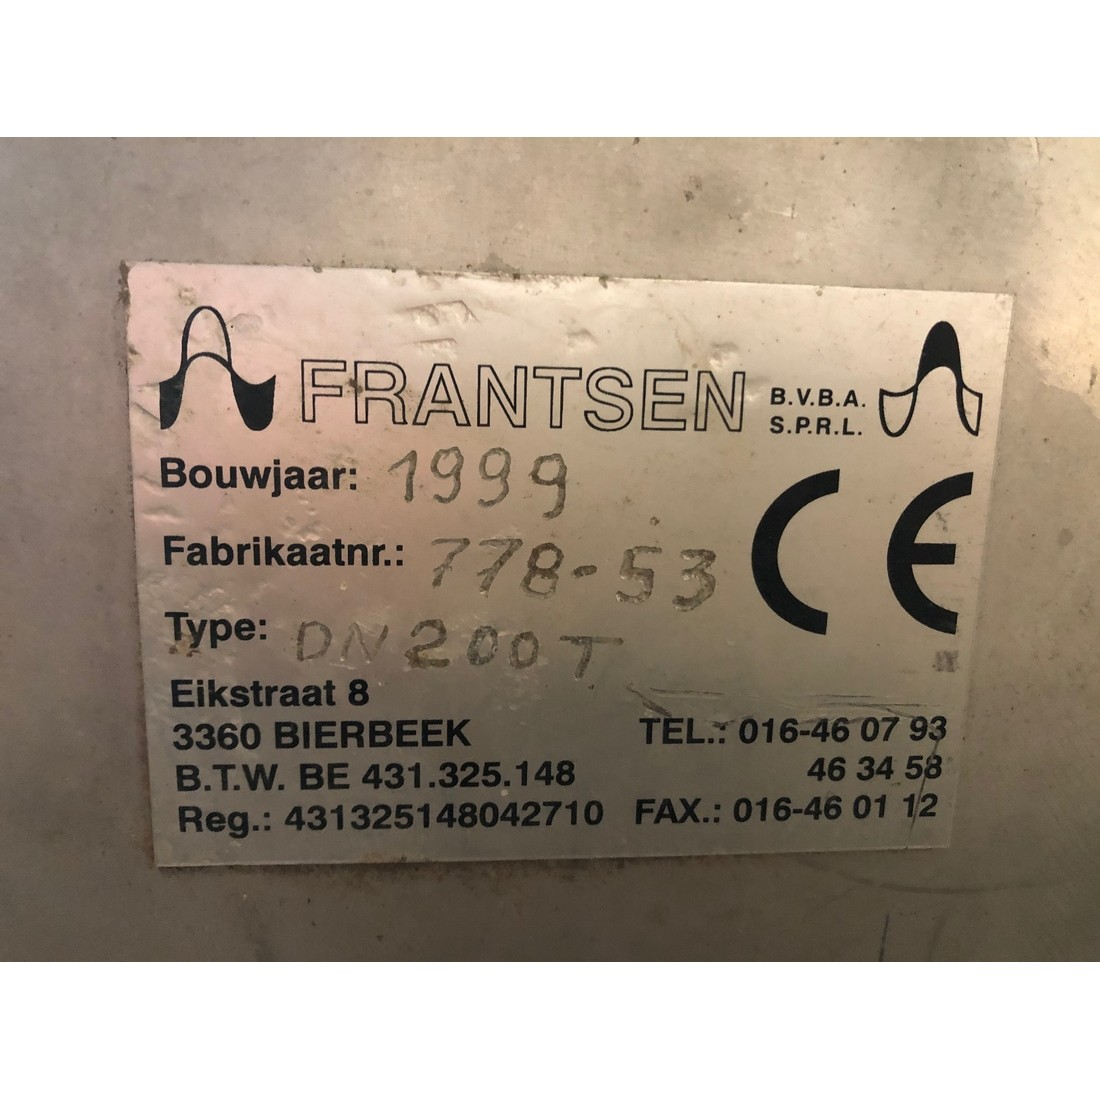 R4S1093 Stainless steel FRANTSEN screw - Ø200X5000 mm